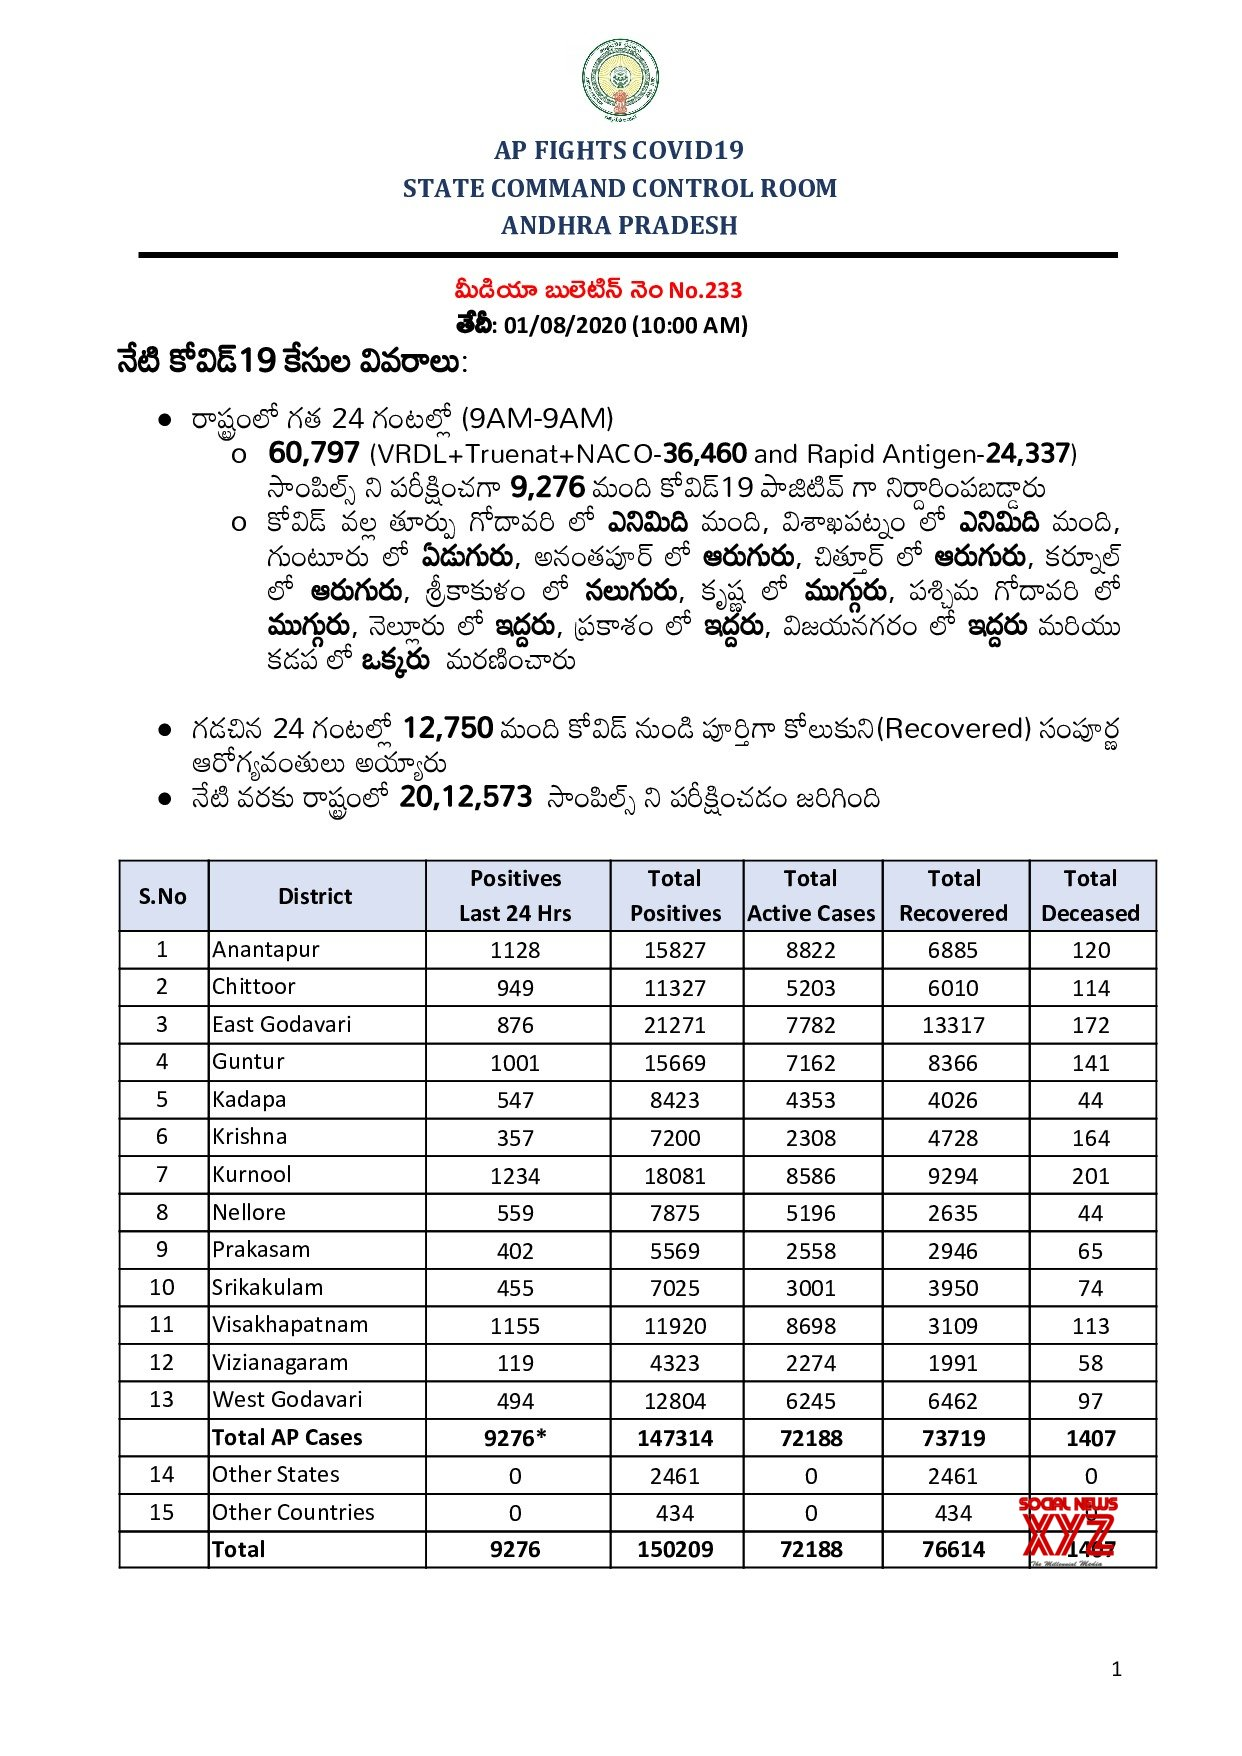 Andhra Pradesh Has 9,276 Positive Cases And The Total Positive Cases In The State Increased To 150,209 As Of 1st August 10 AM